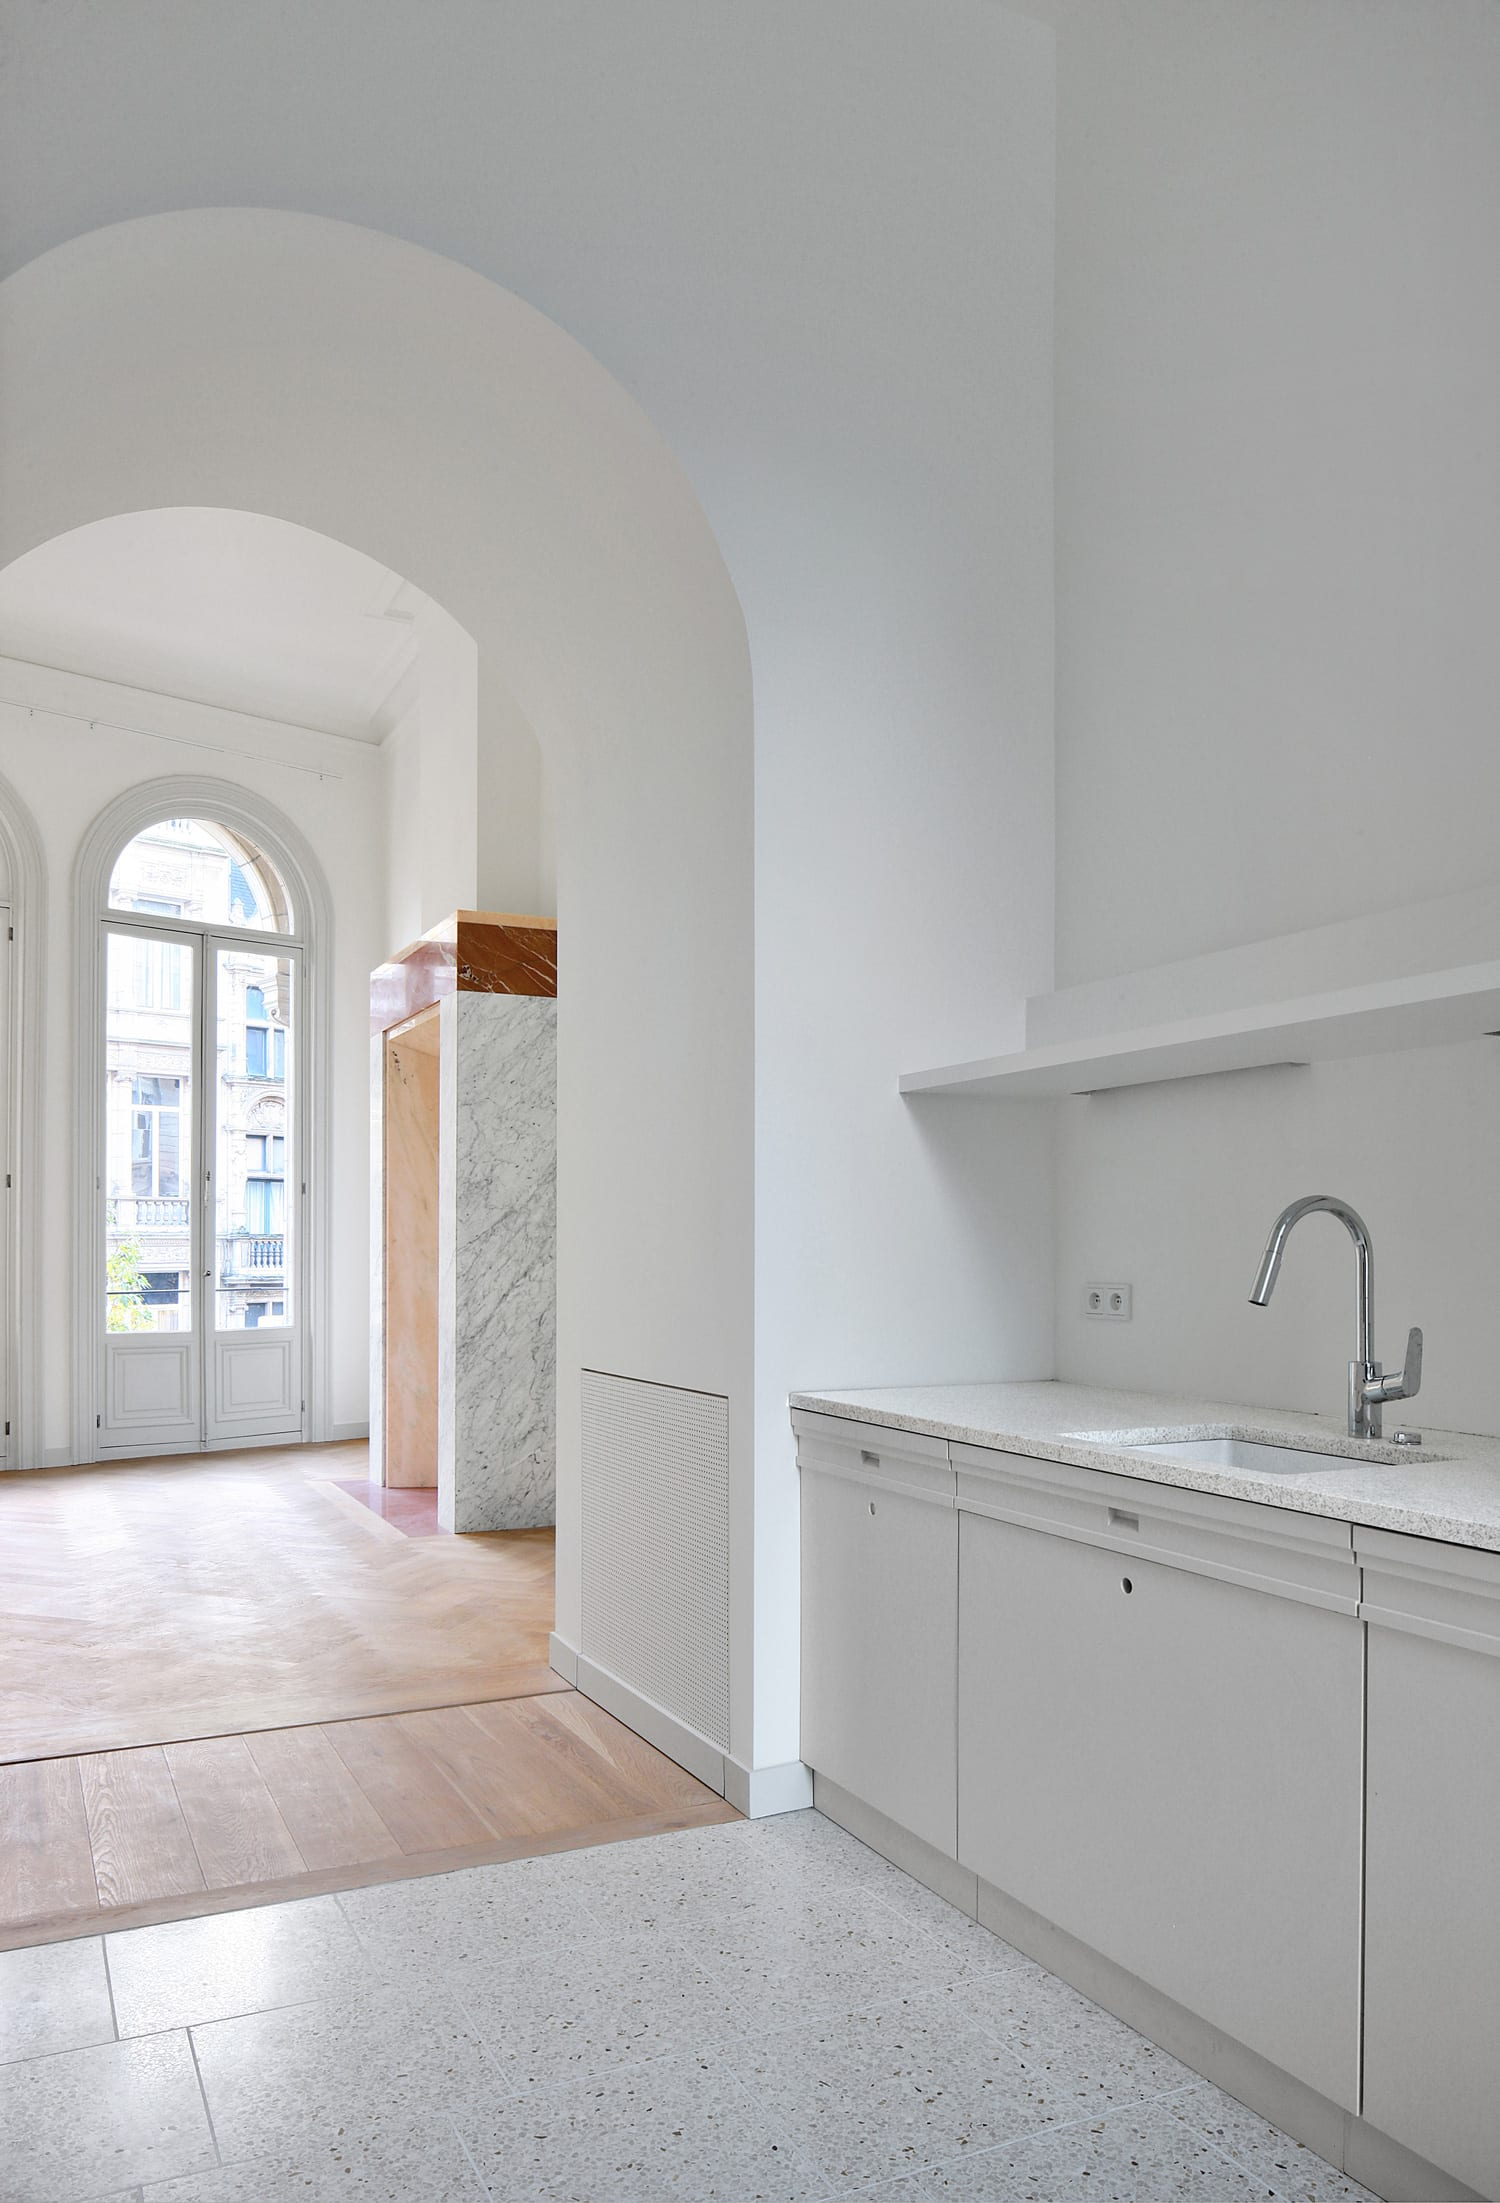 Renovation of 3 Eclectic Buildings in Antwerp, Belgium by Bovenbouw | Yellowtrace